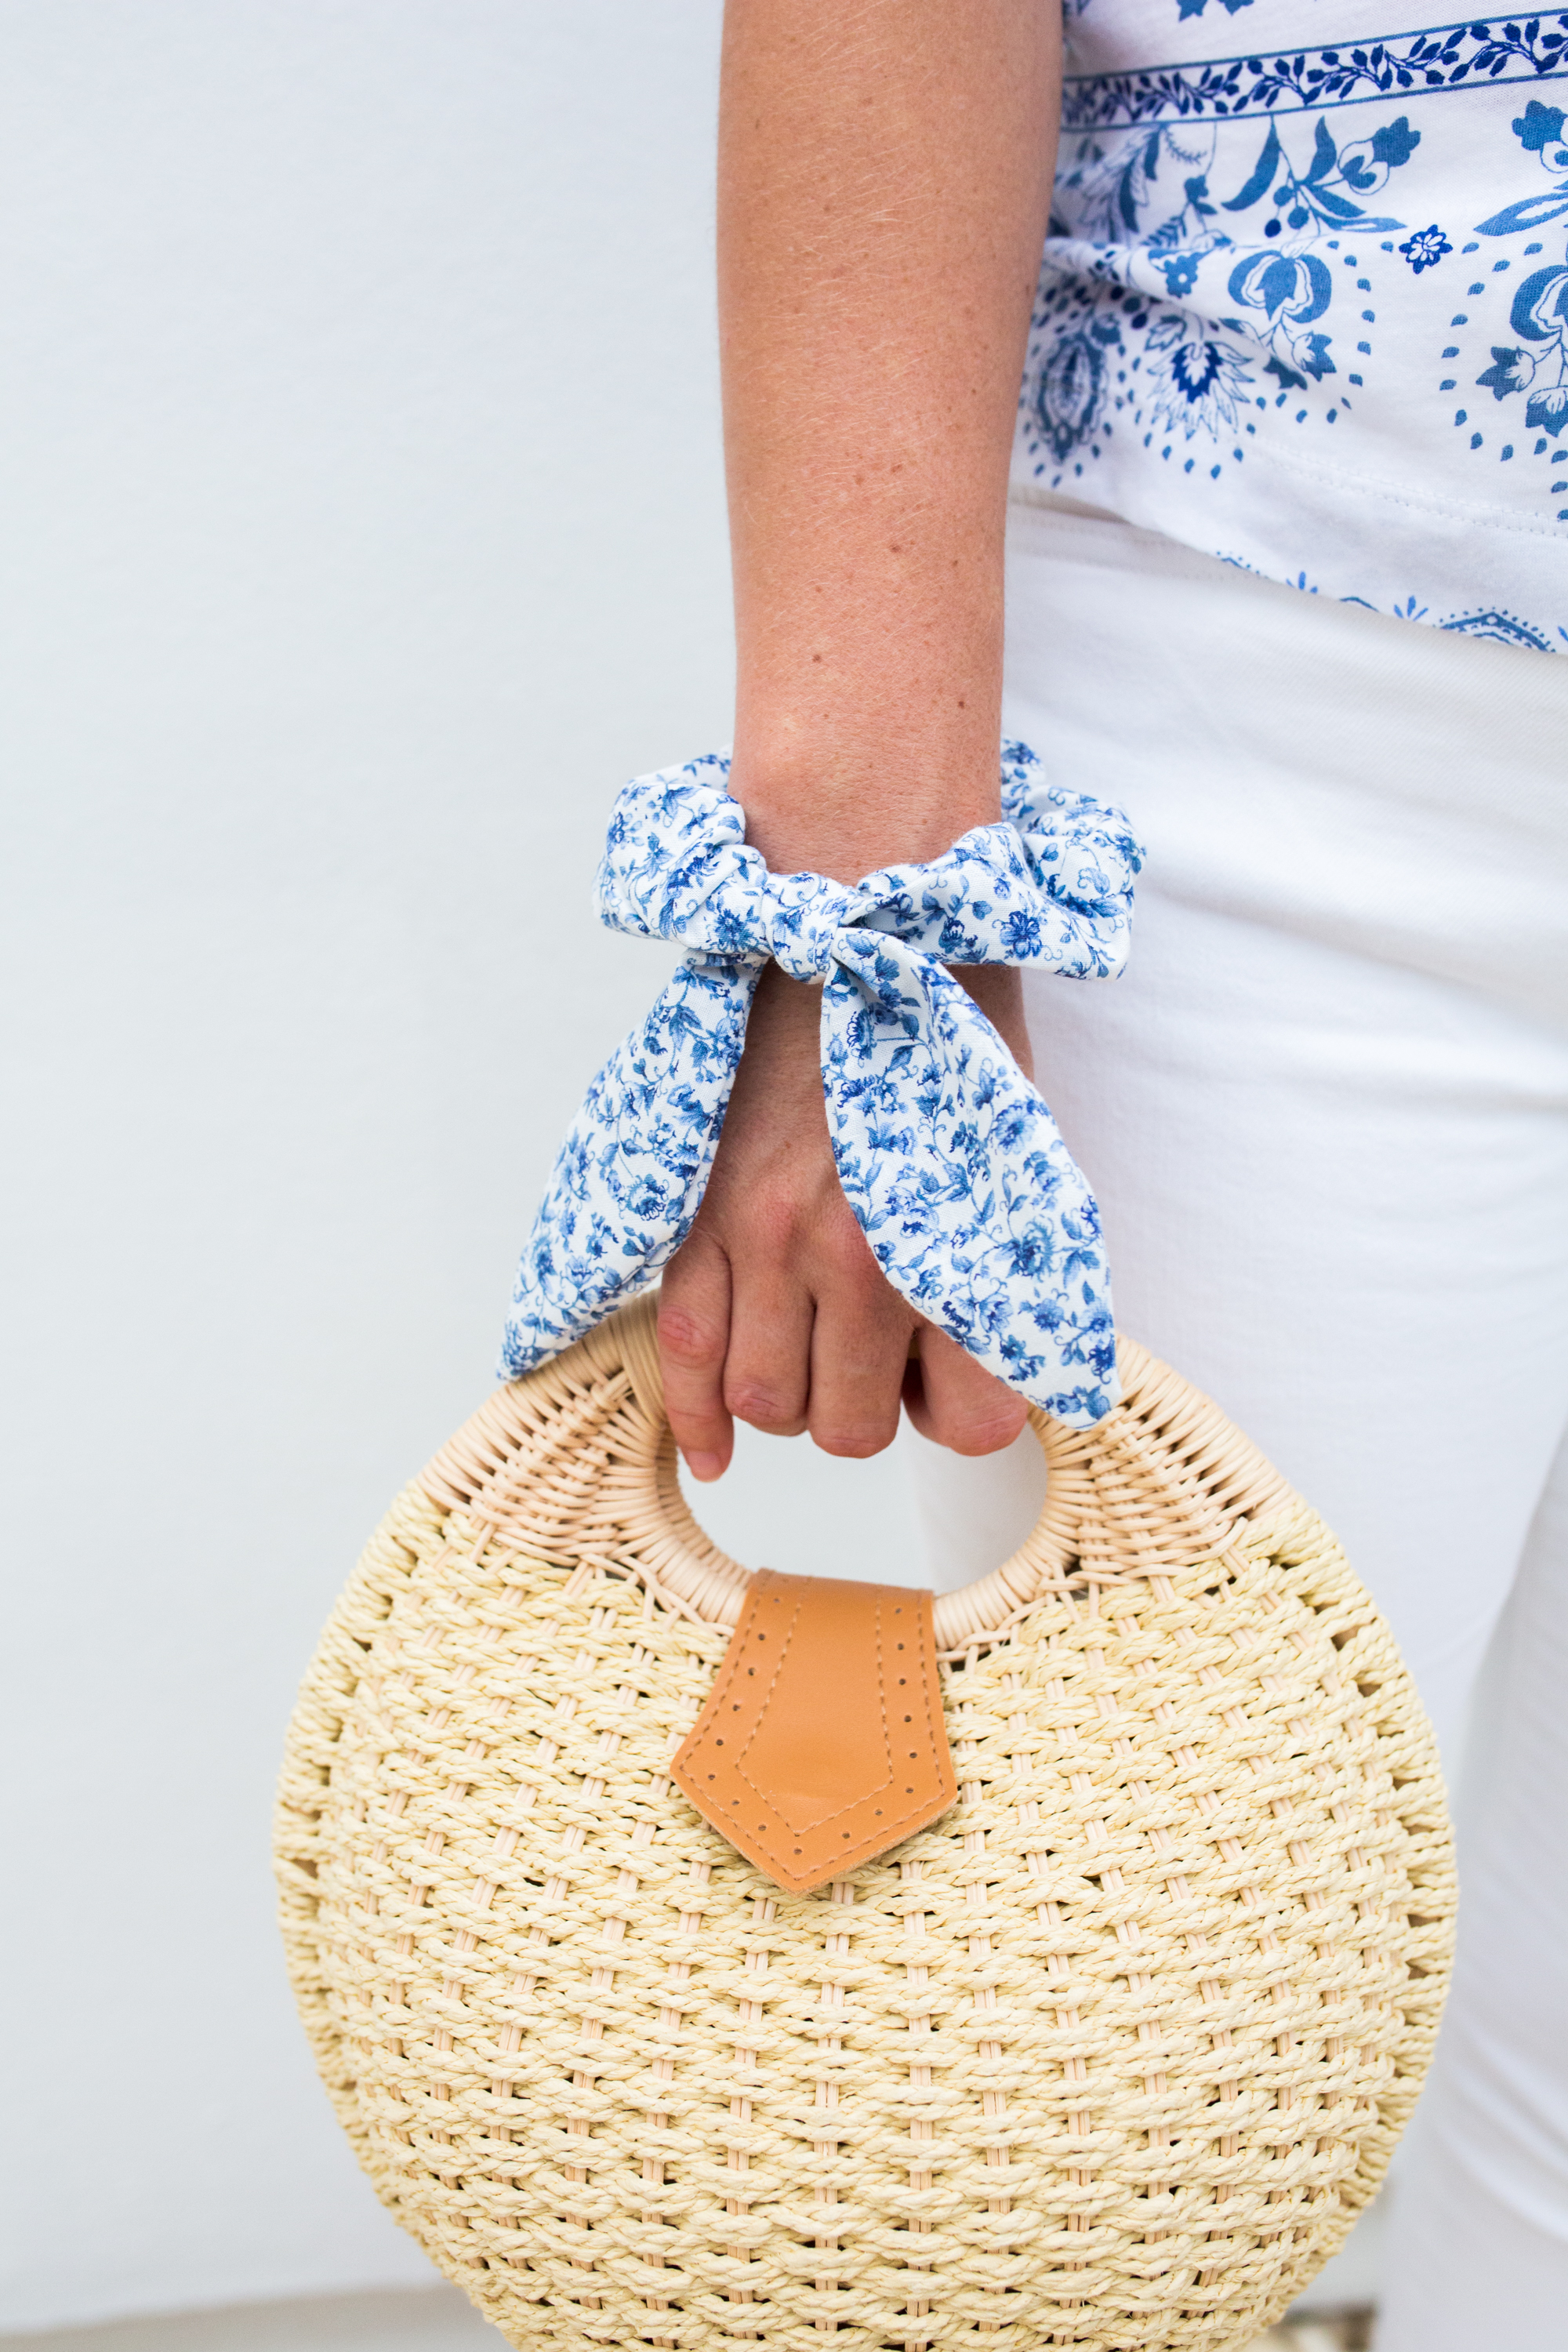 Blue and White Floral Scrunchie / Bow Hair Scrunchie / Hair Accessory / Straw Bag / White Jeans - Sunshine Style